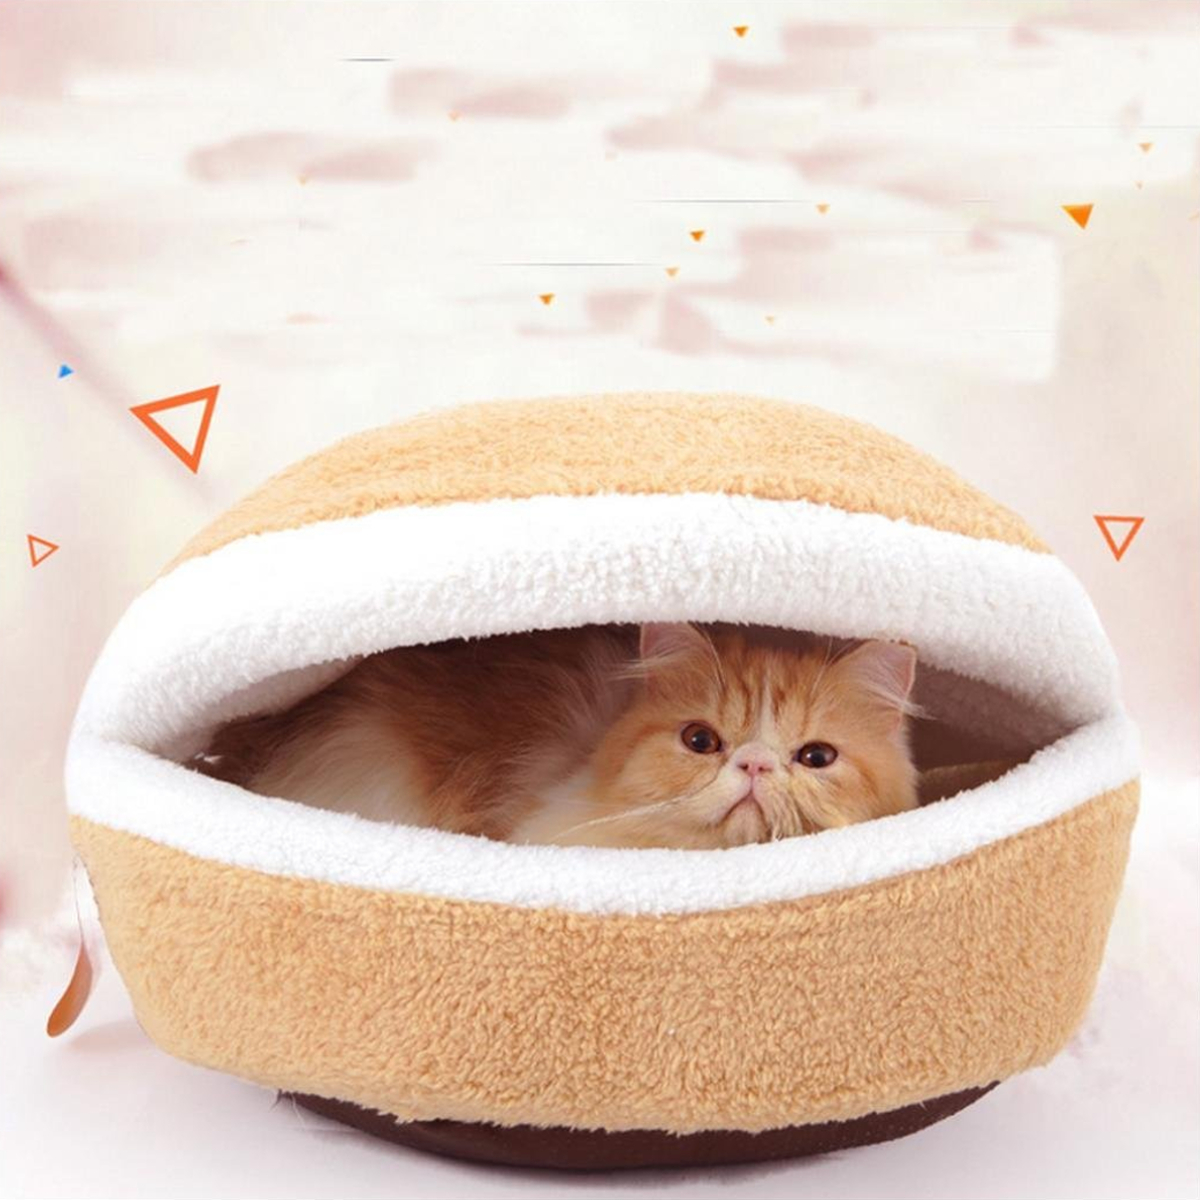 Flannel Cute Pet Cat Orthopedic Oval Hamburger Bed Kennel Pet Warm Winter Sleeping Bed Cushion House Cave Nest Warmer Mat